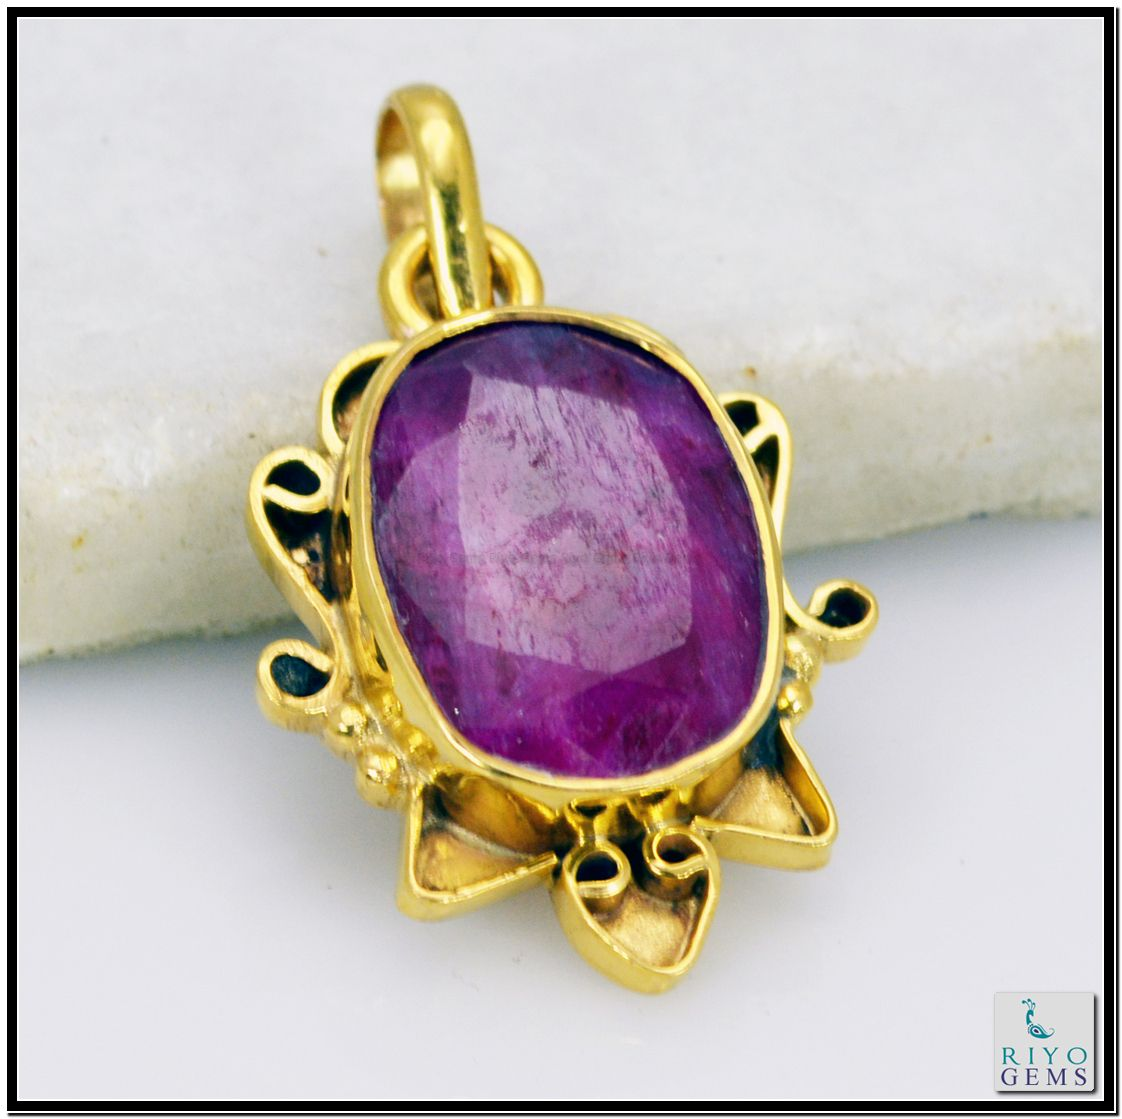 Indian Ruby Gem 18 C Yellow Gold Plated Jasmine Pendants L 1.5in Gppiru-3412 http://www.riyogems.com